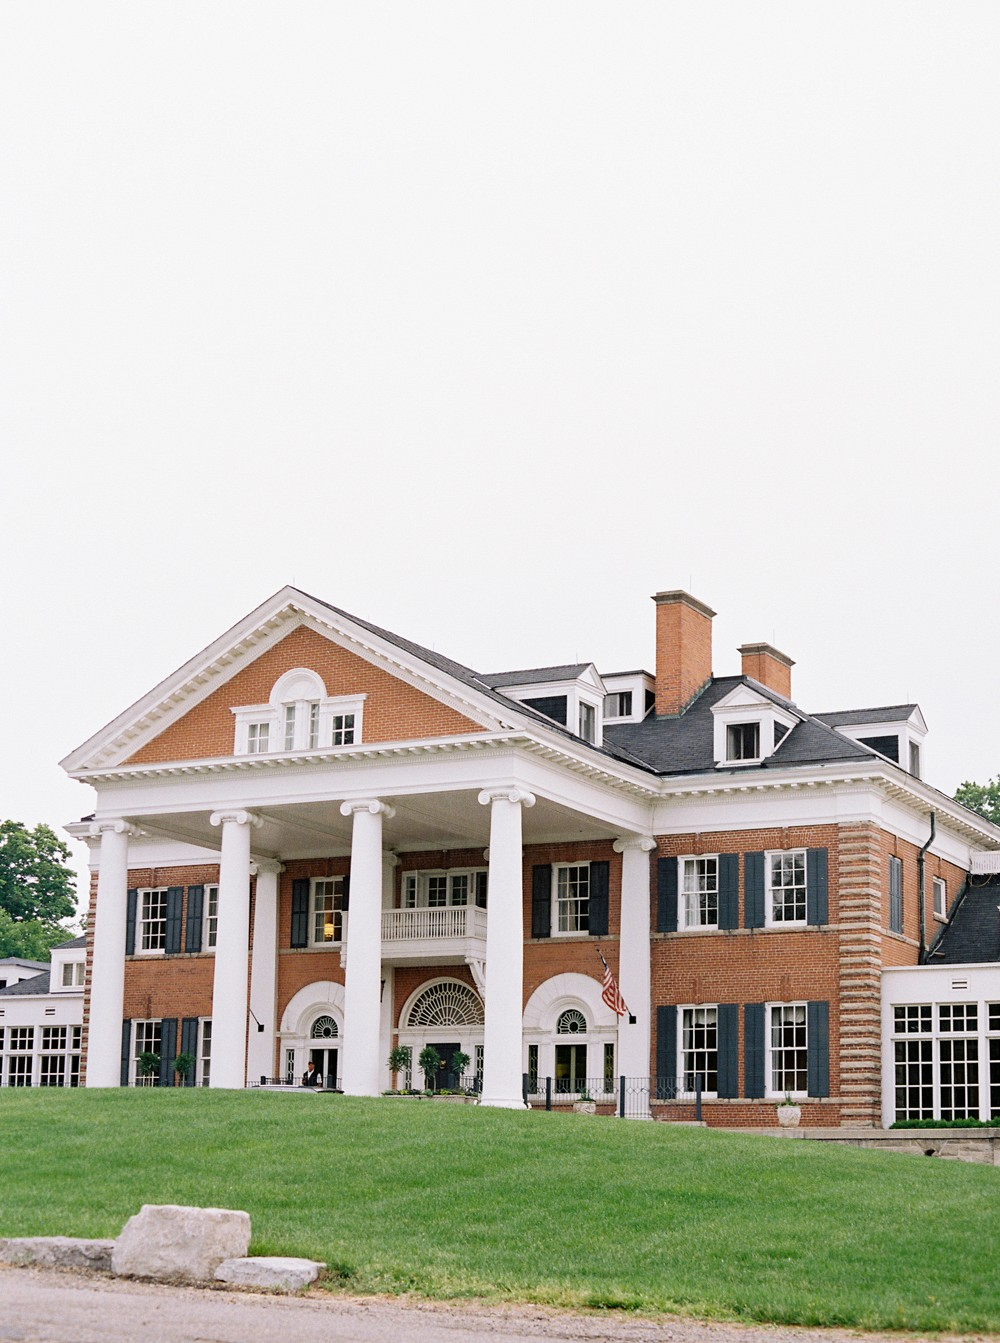 Canada wedding venue | Sophisticated Real Wedding in Ontario by When He Found Her on Wedding Sparrow